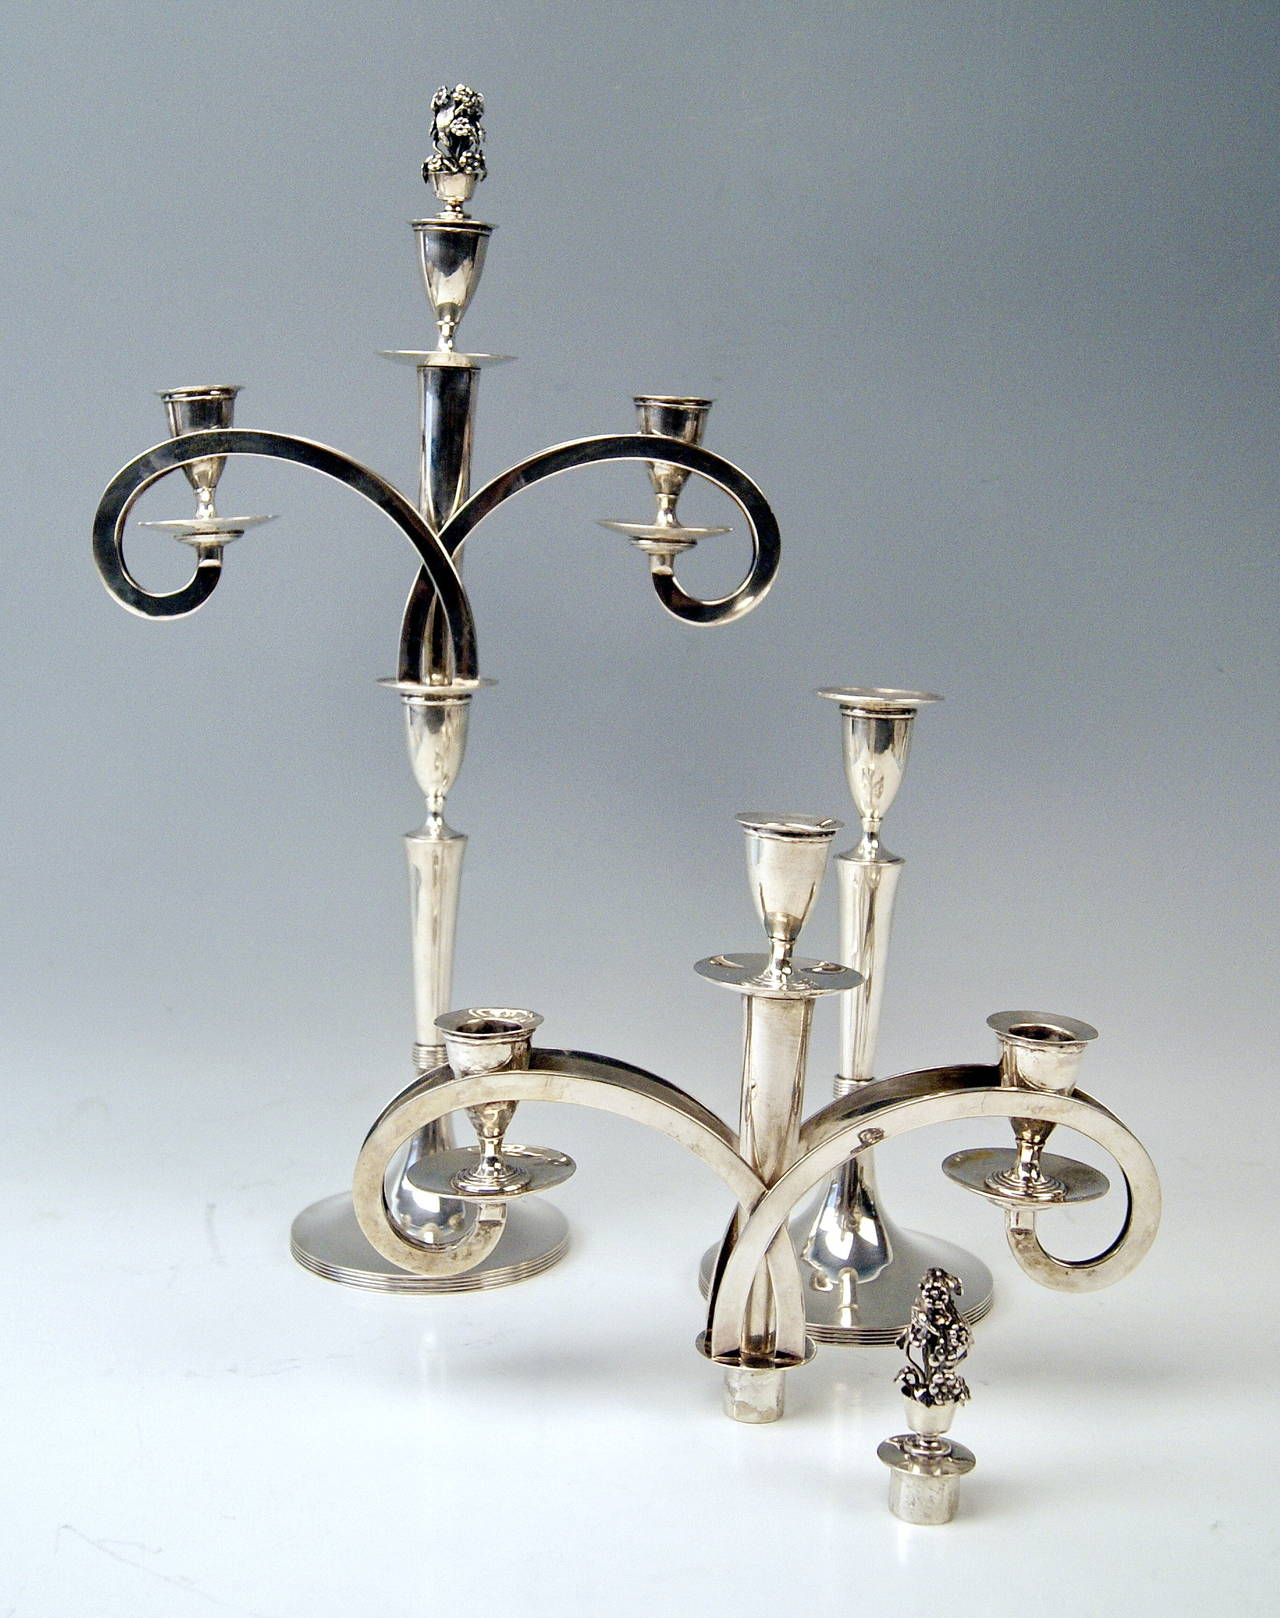 Silver 13 Lot Viennese Two Empire Candlesticks by Anton Koell Dated 1811 In Excellent Condition For Sale In Vienna, AT